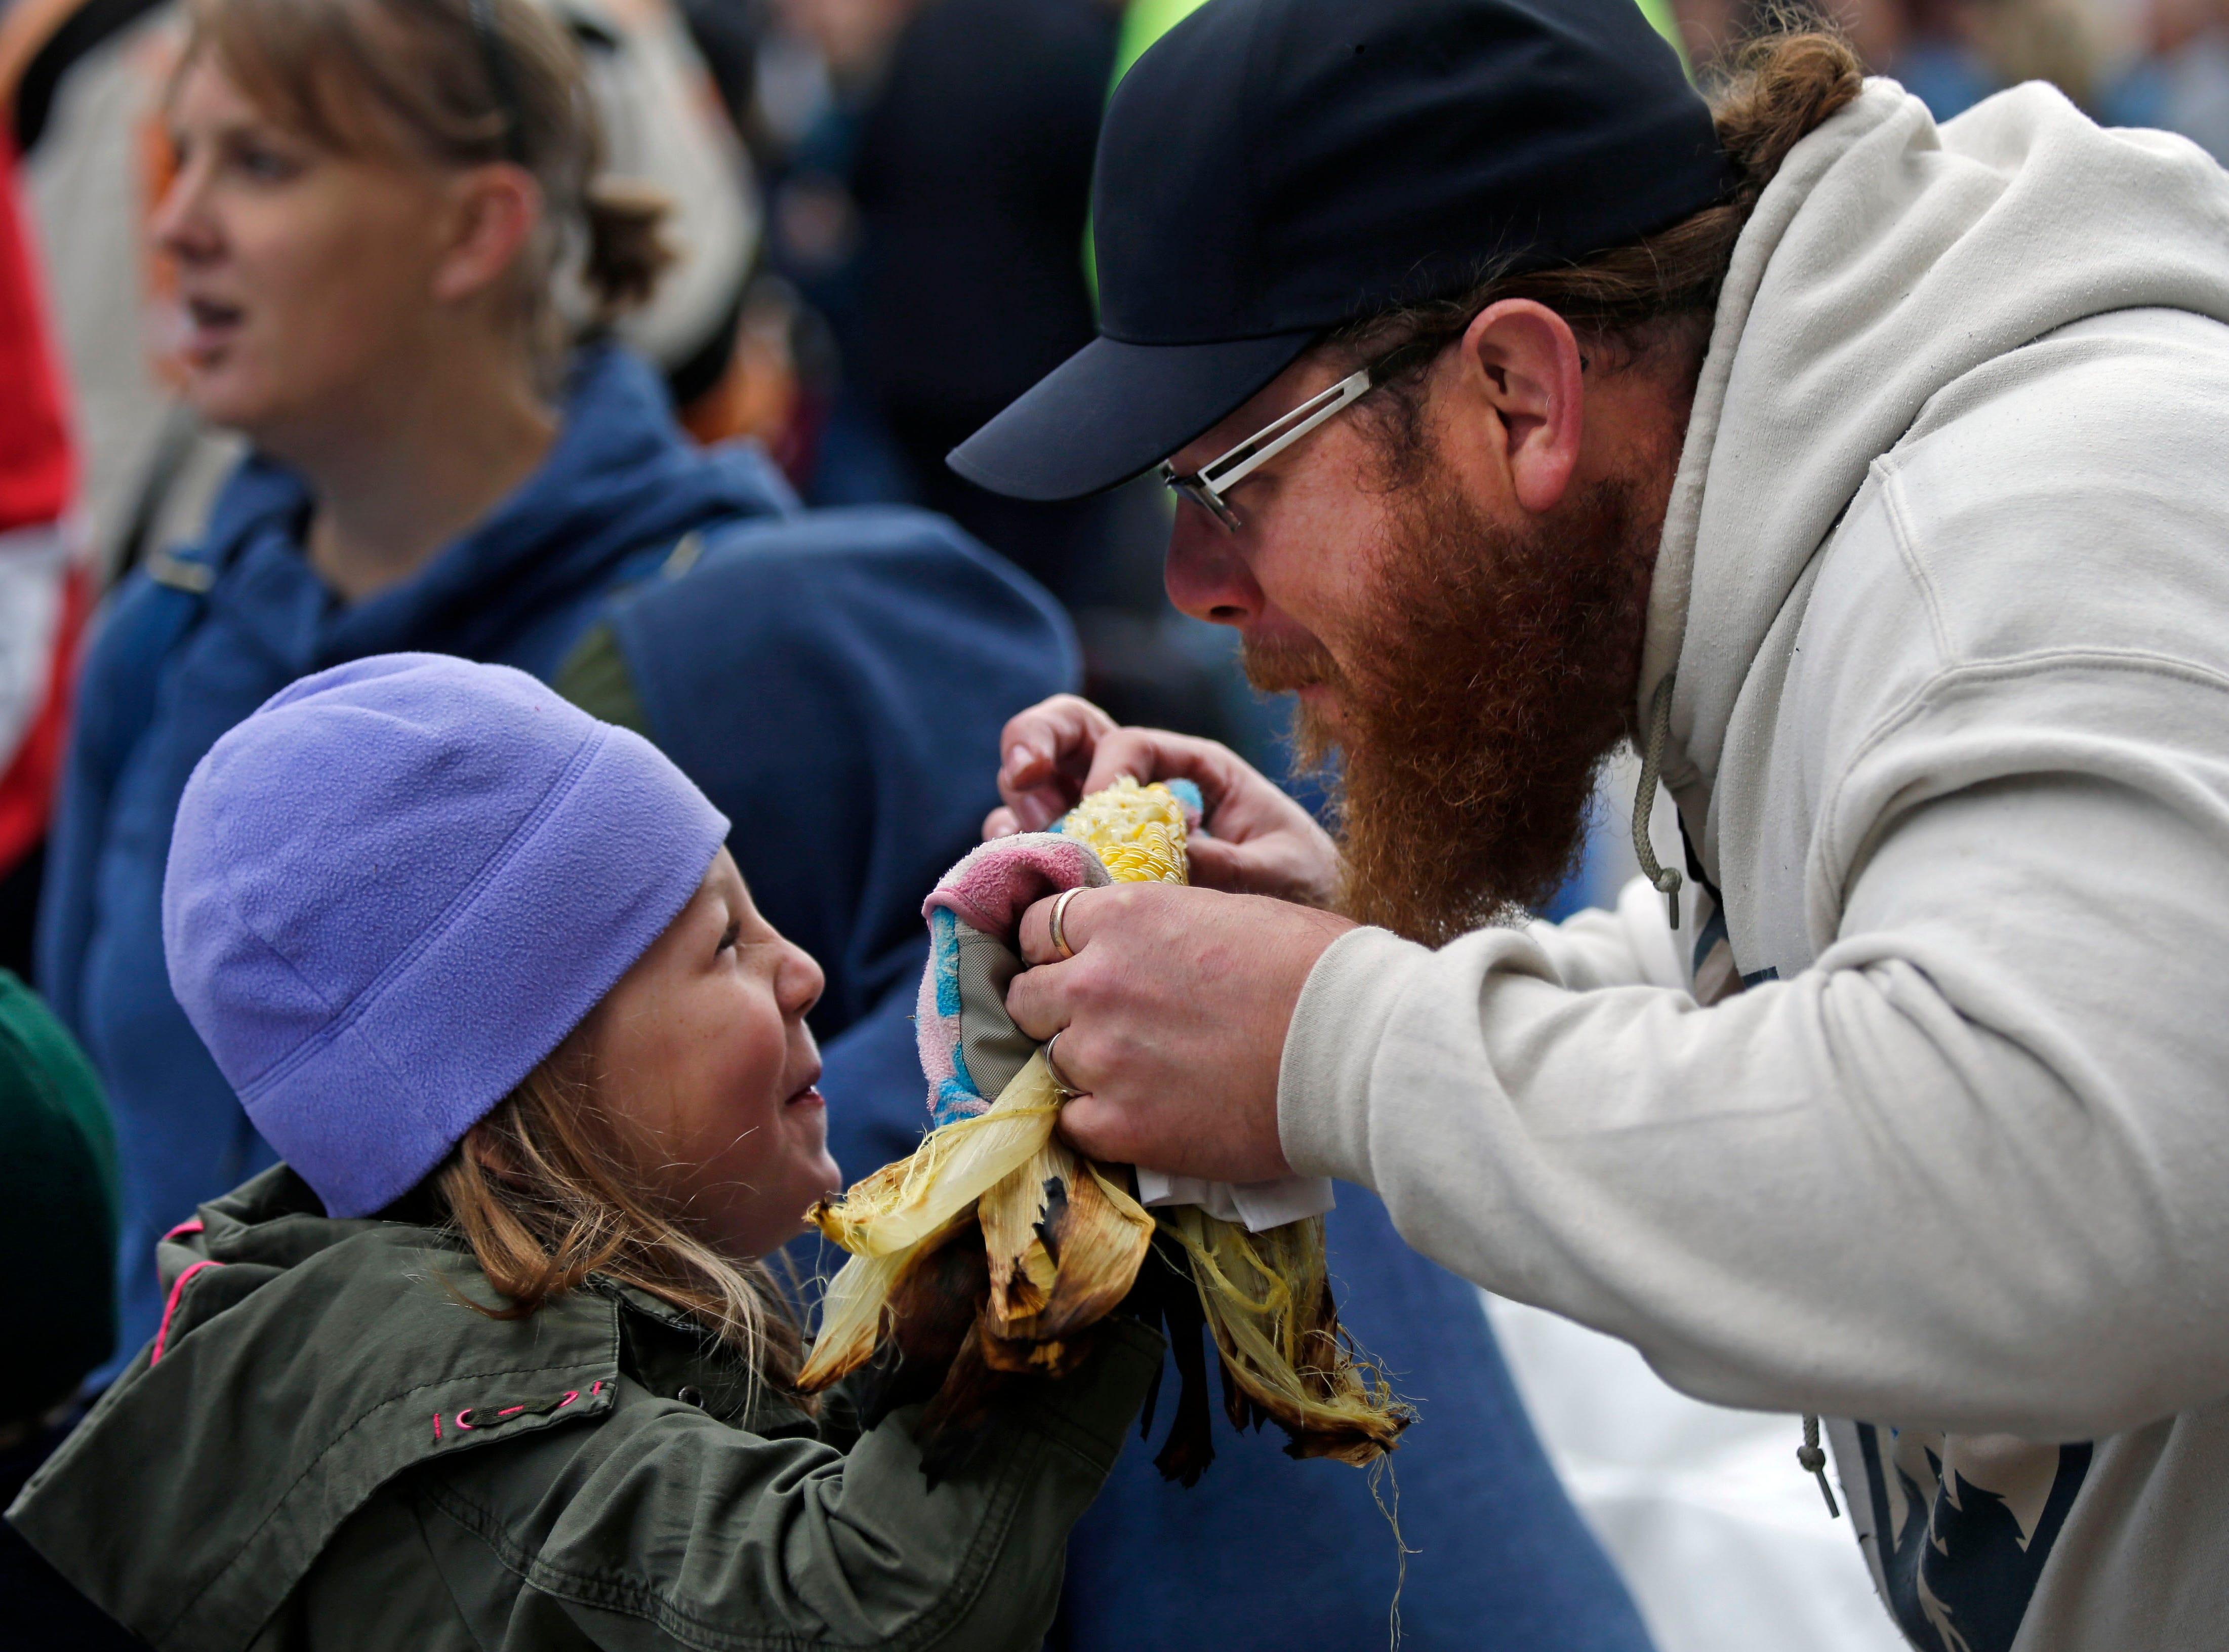 Matt Bonson and his daughter Zoe share corn on the cob as Octoberfest 2018 takes place Saturday, September 29, 2018, in downtown Appleton, Wis.